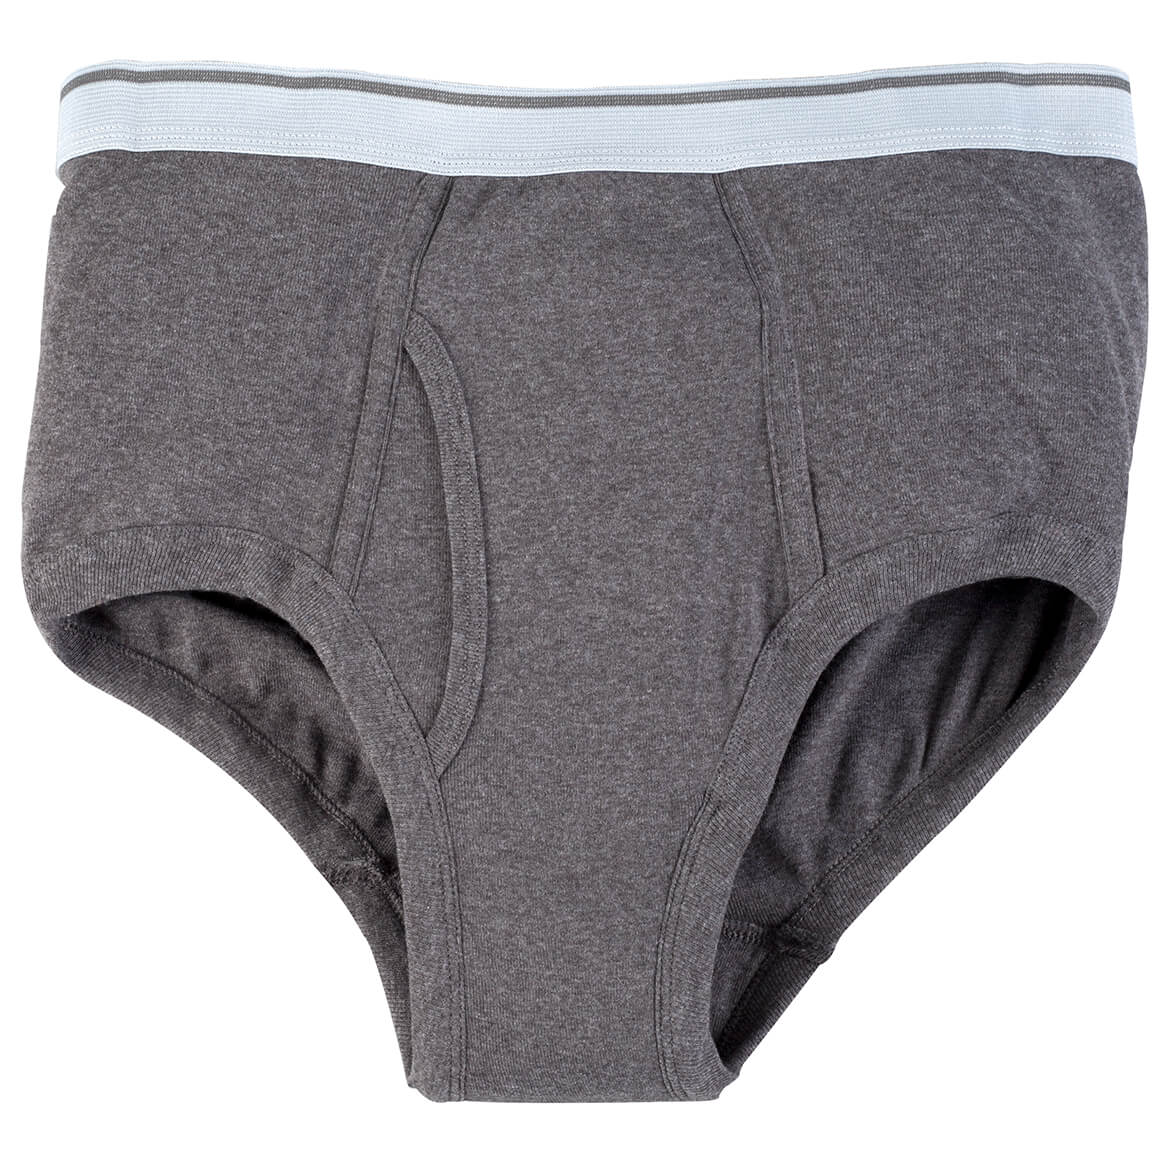 Incontinence Briefs For Men - 20 Oz. Gray-348098